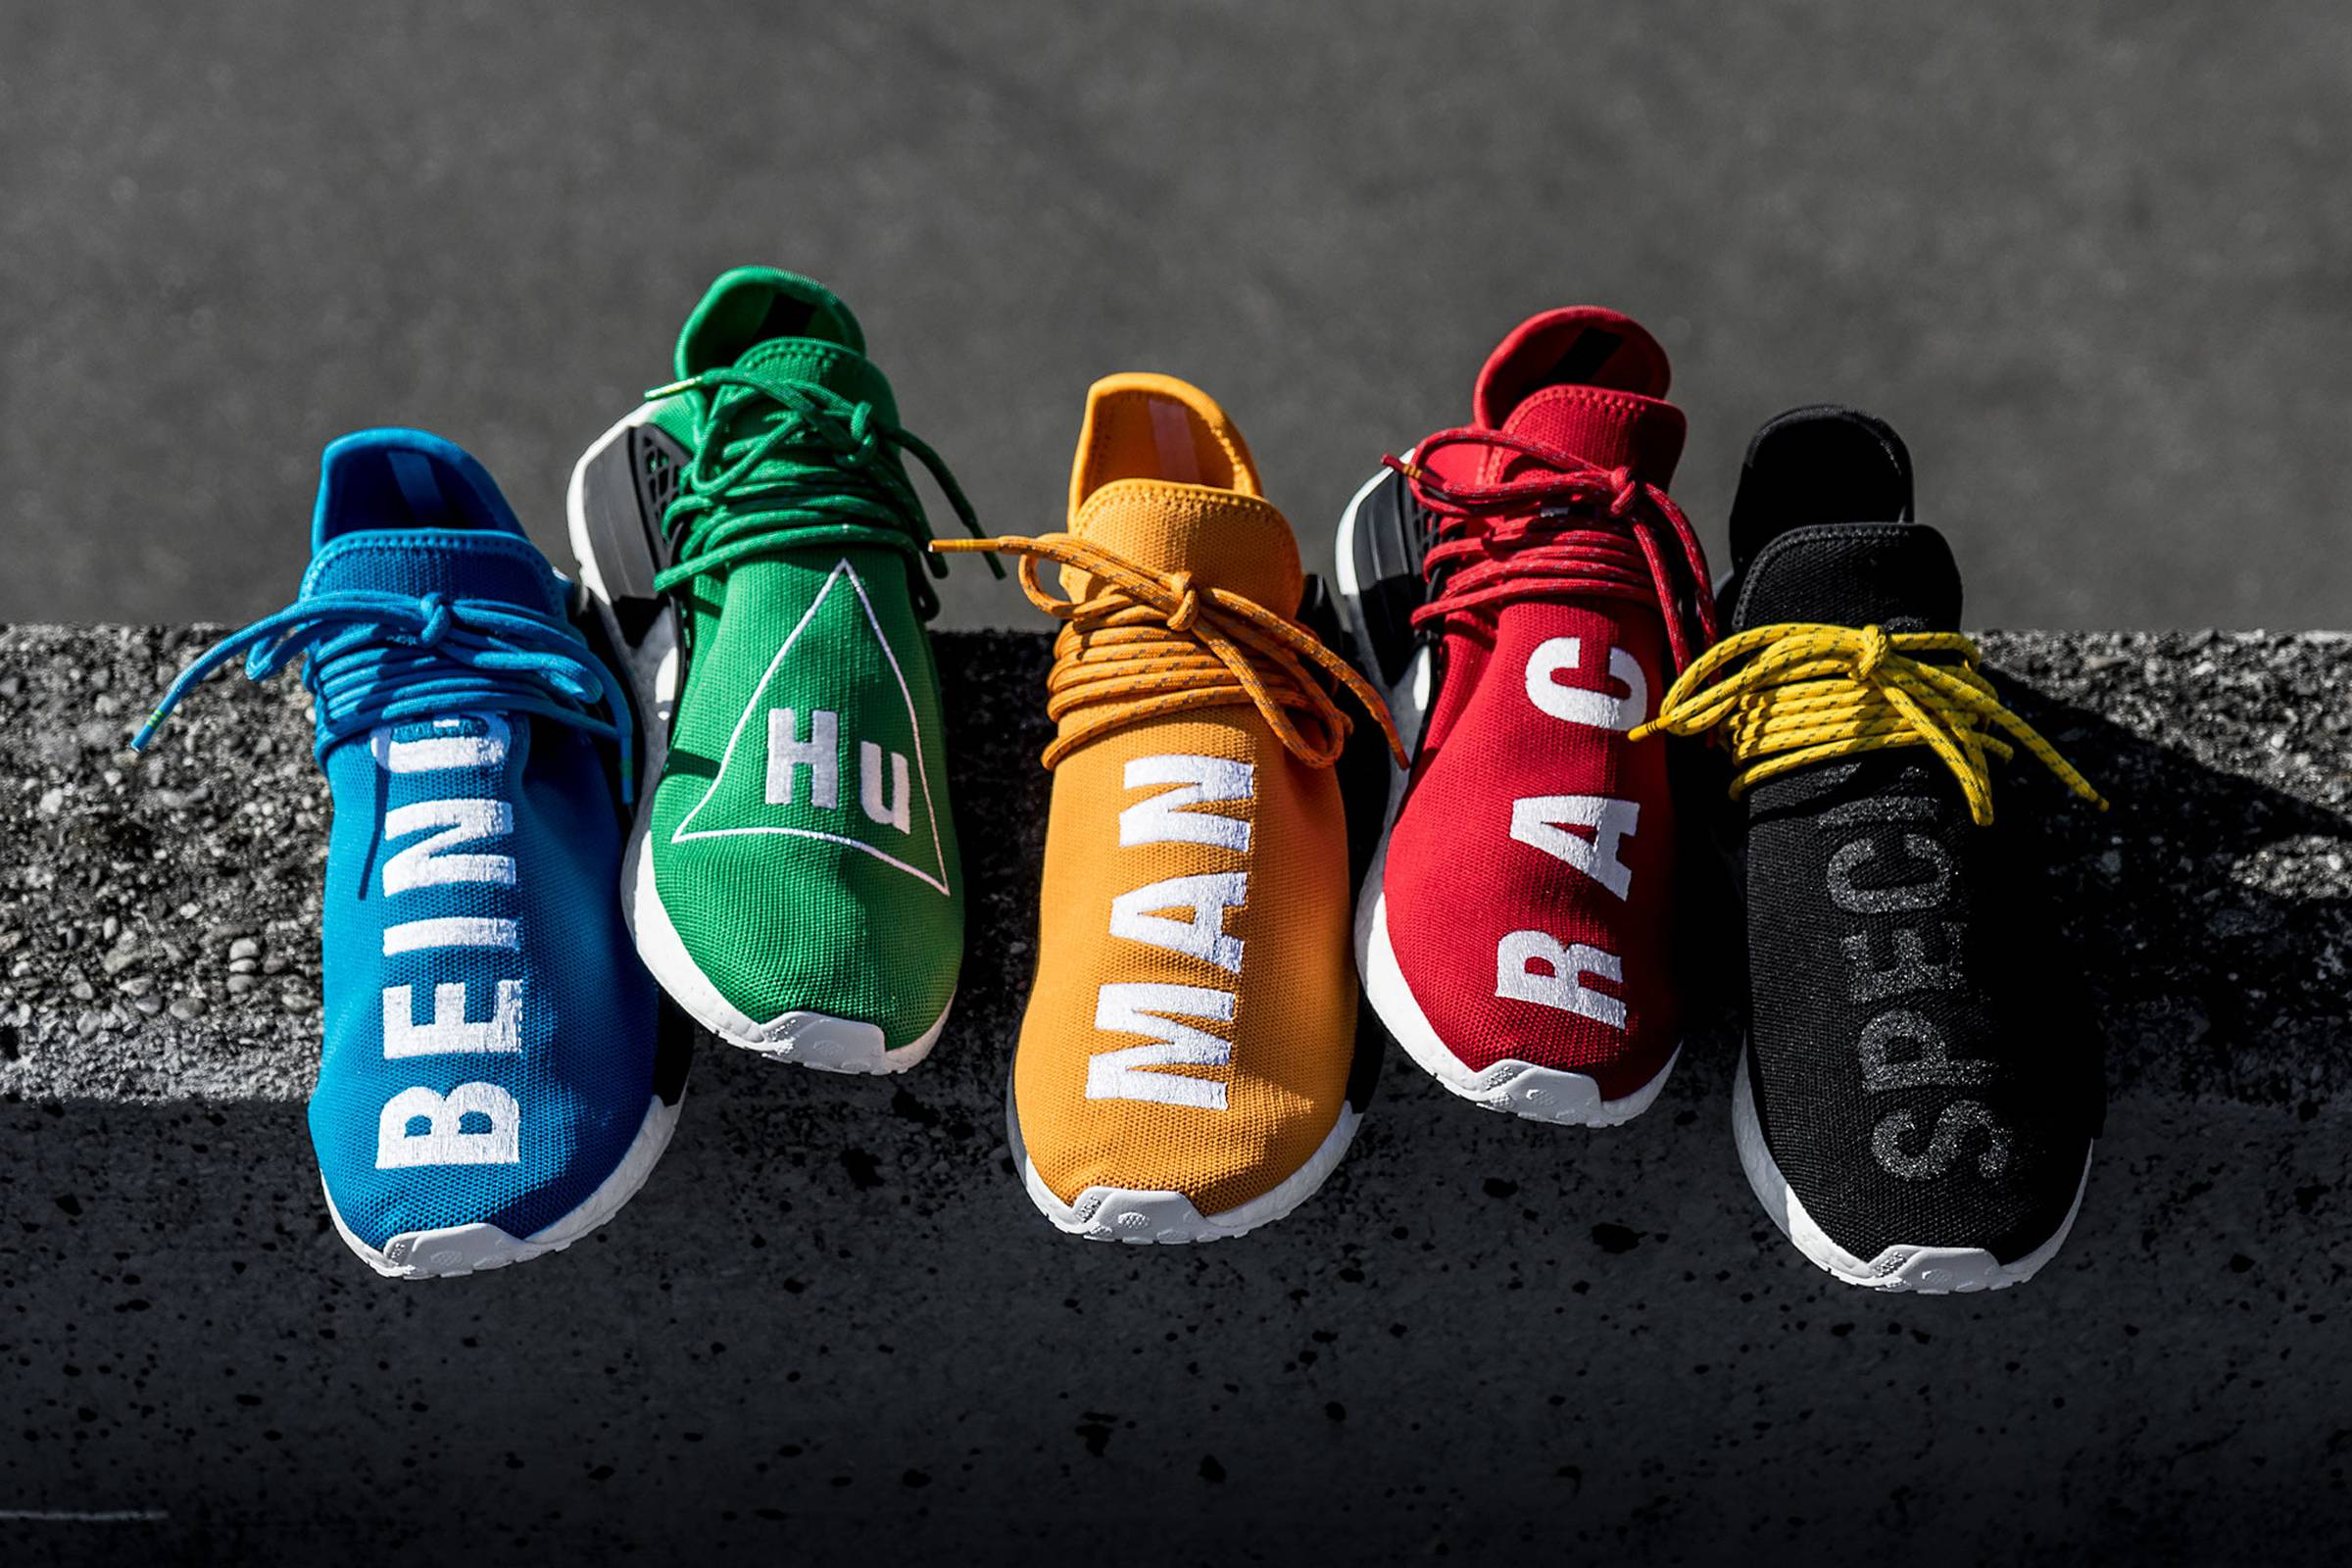 Early colorways from Pharrell's collaboration adidas HU NMD collection